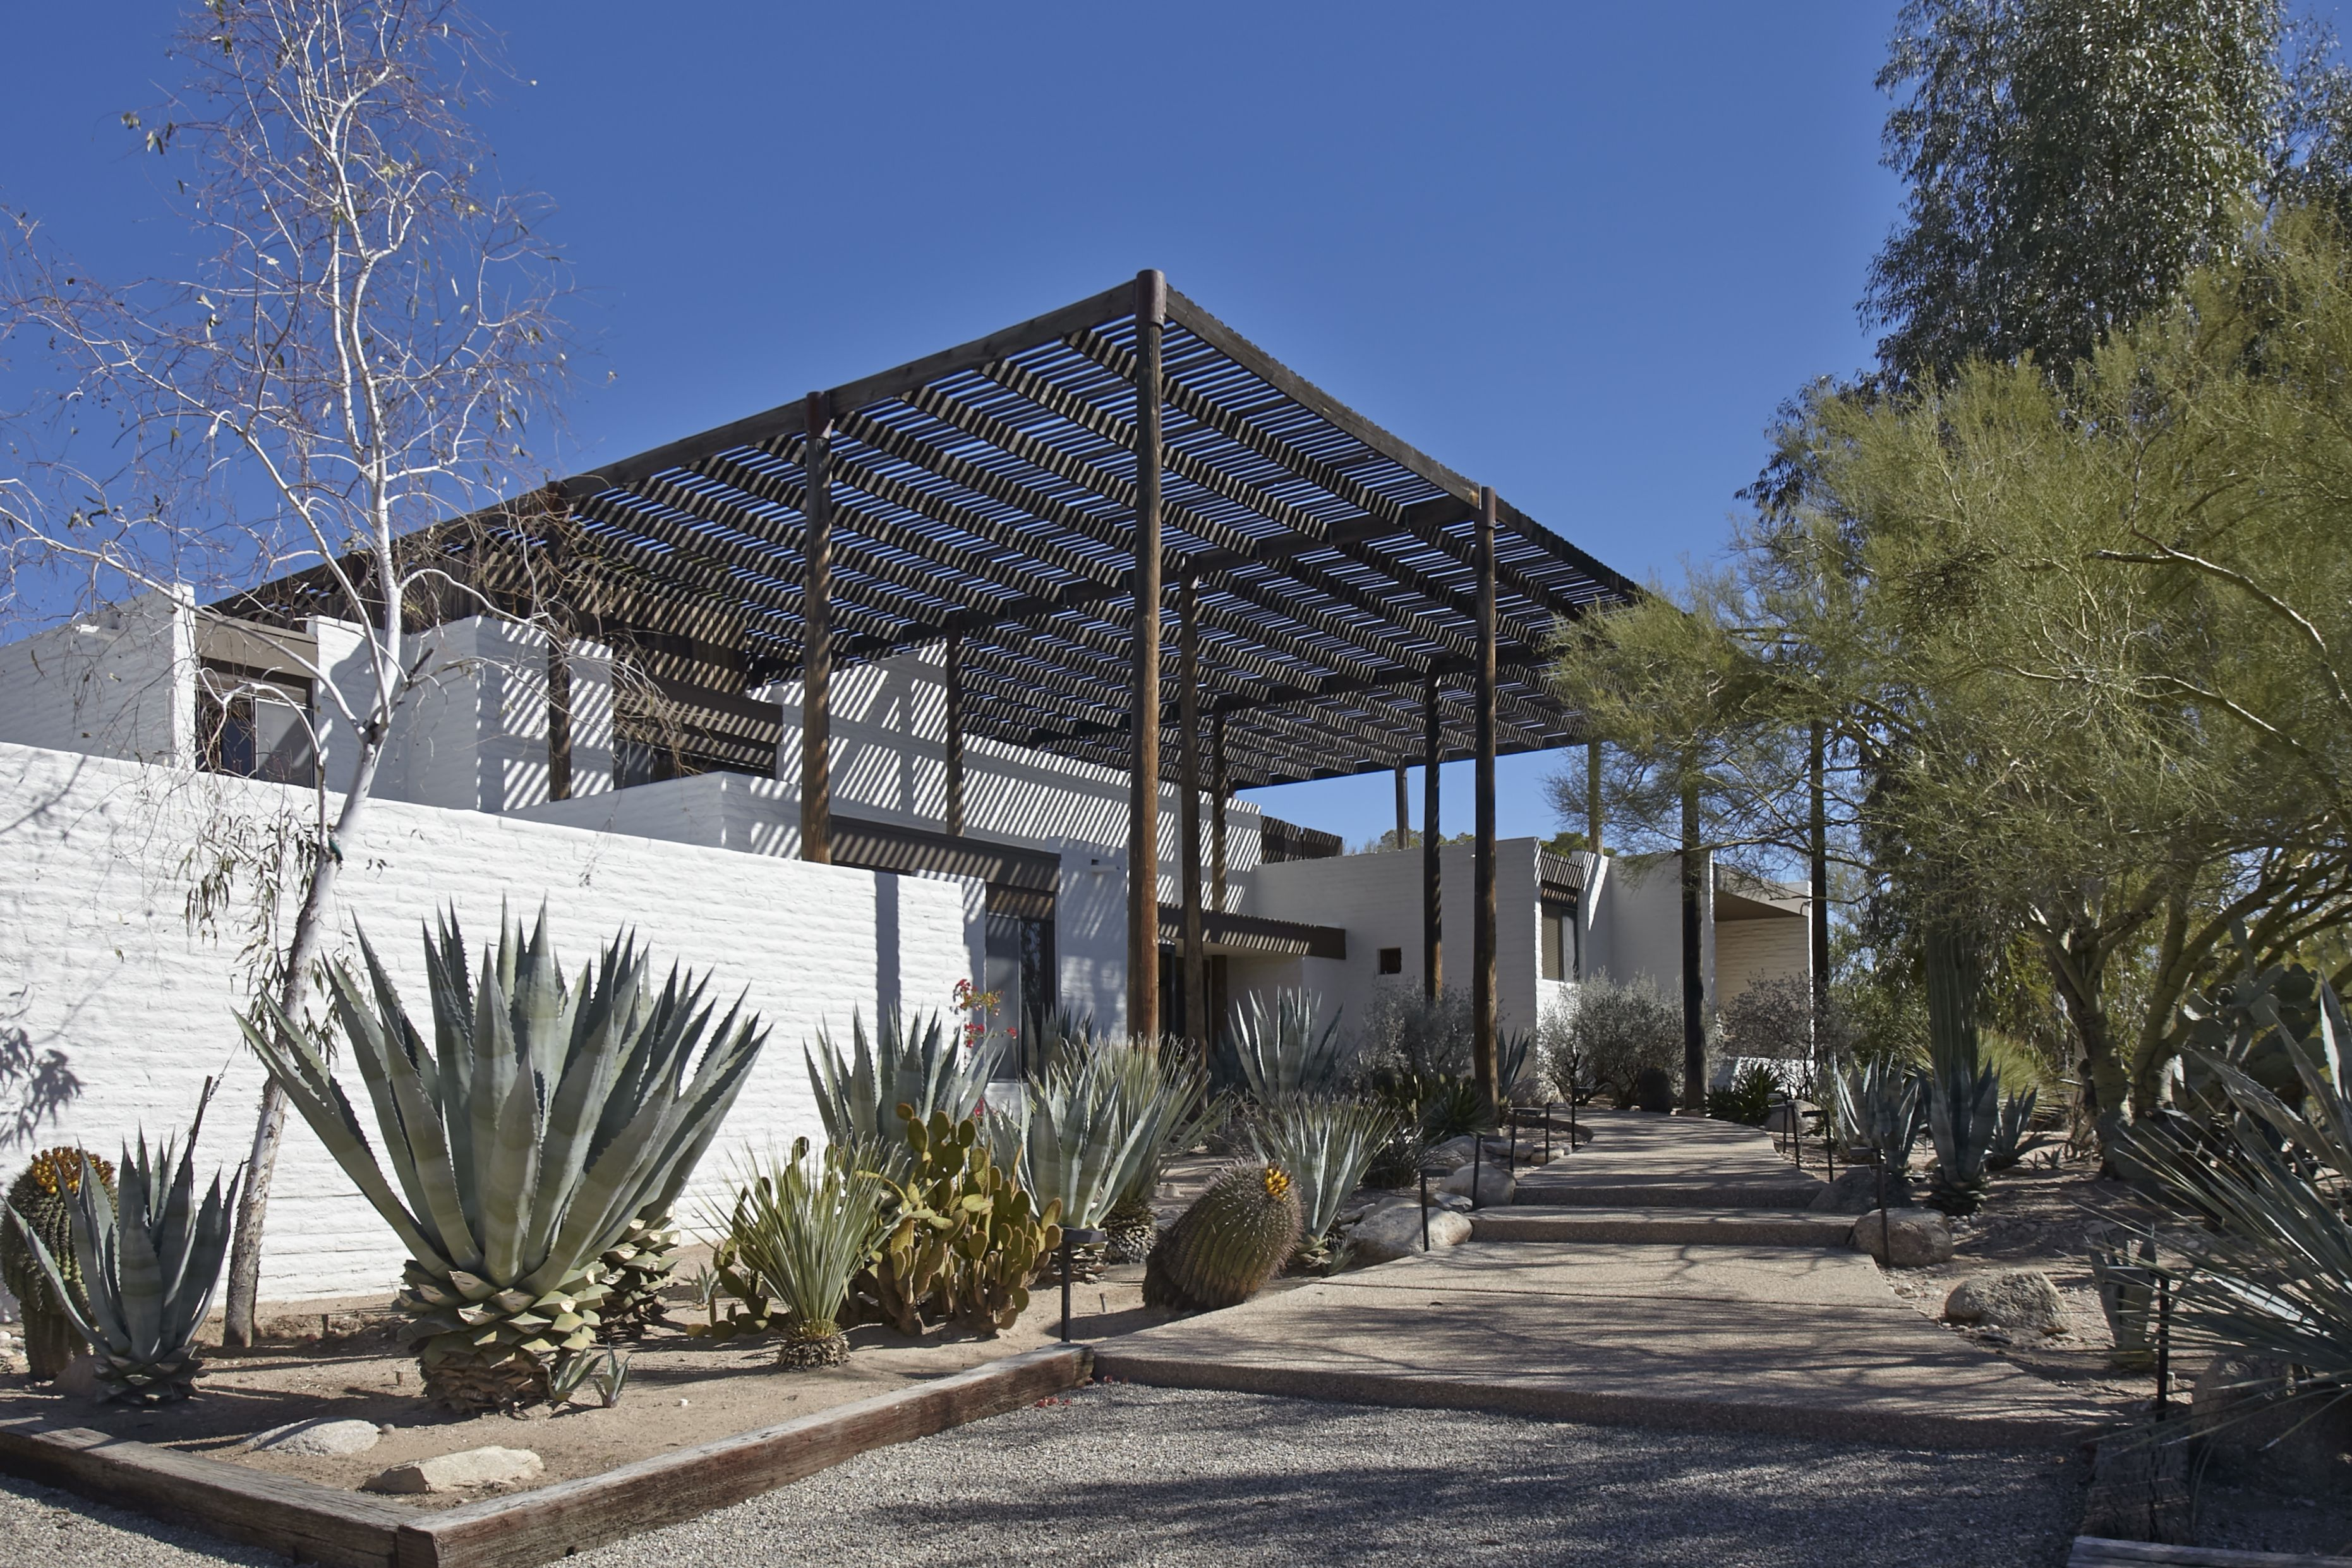 judith chafee dean of desert architecture dean architects and